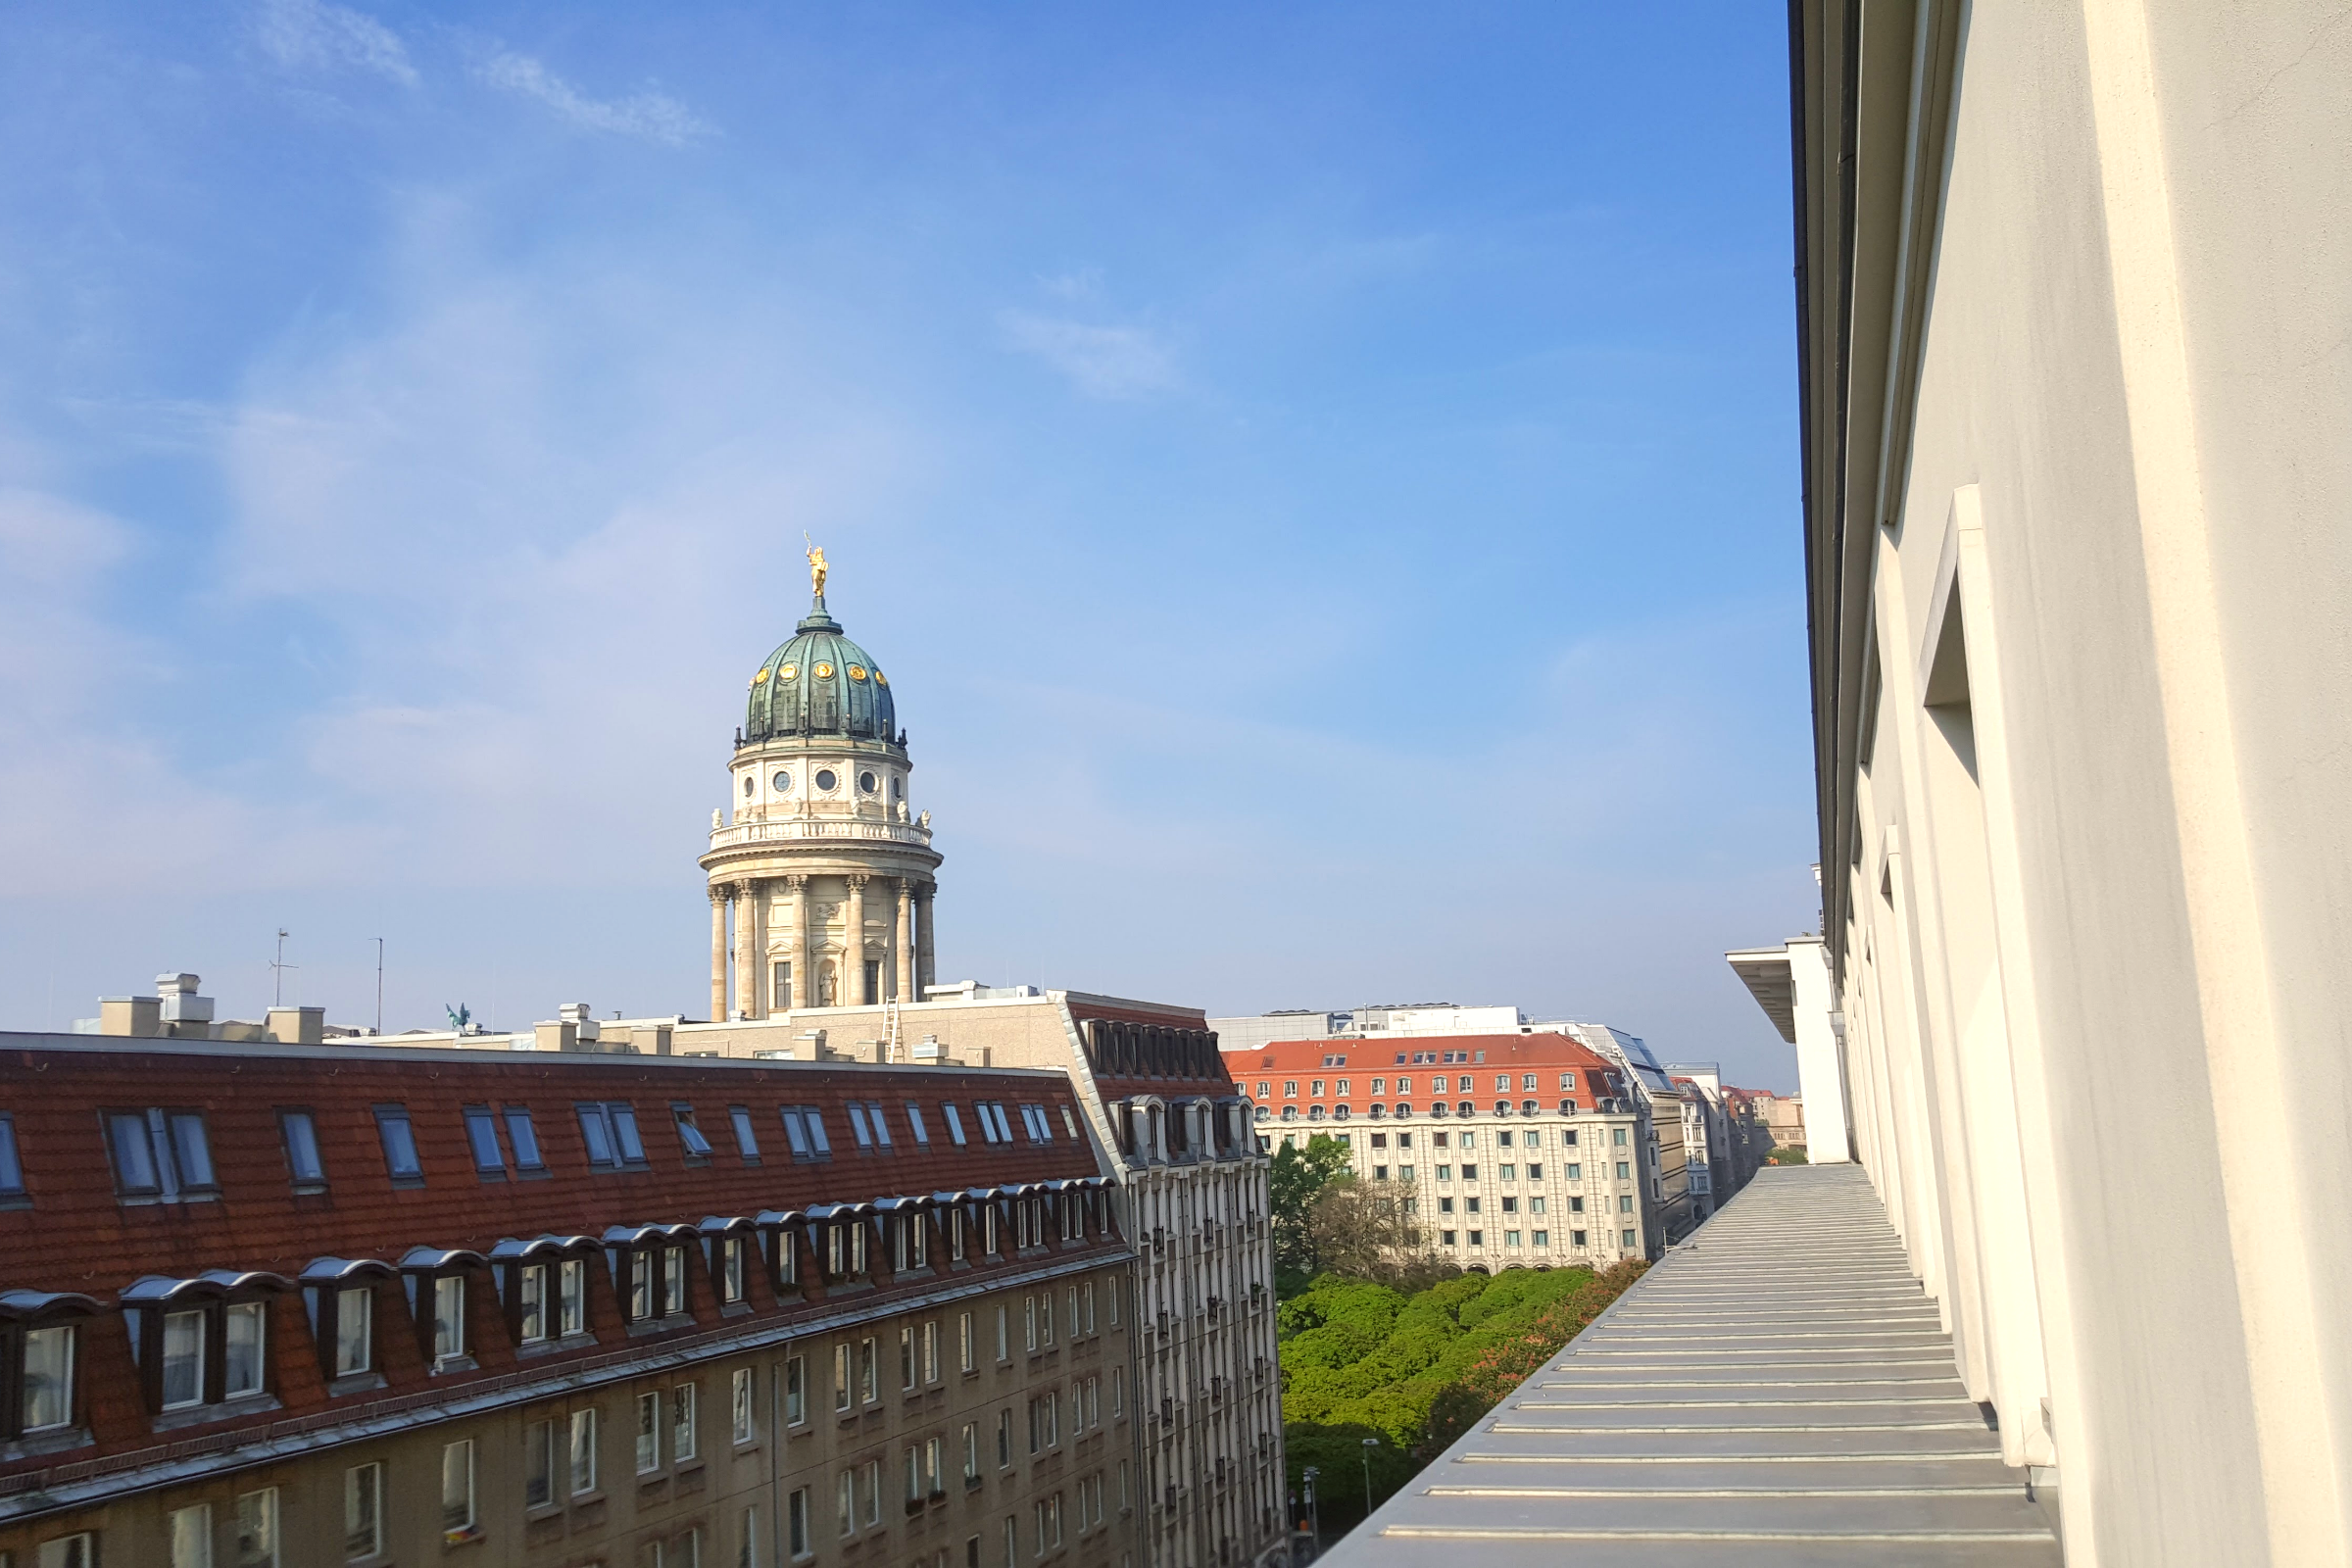 Morning Views at Hotel de Rome a Rocco Forte Hotel Berlin, Germany Photo Courtesy Patrick T Cooper